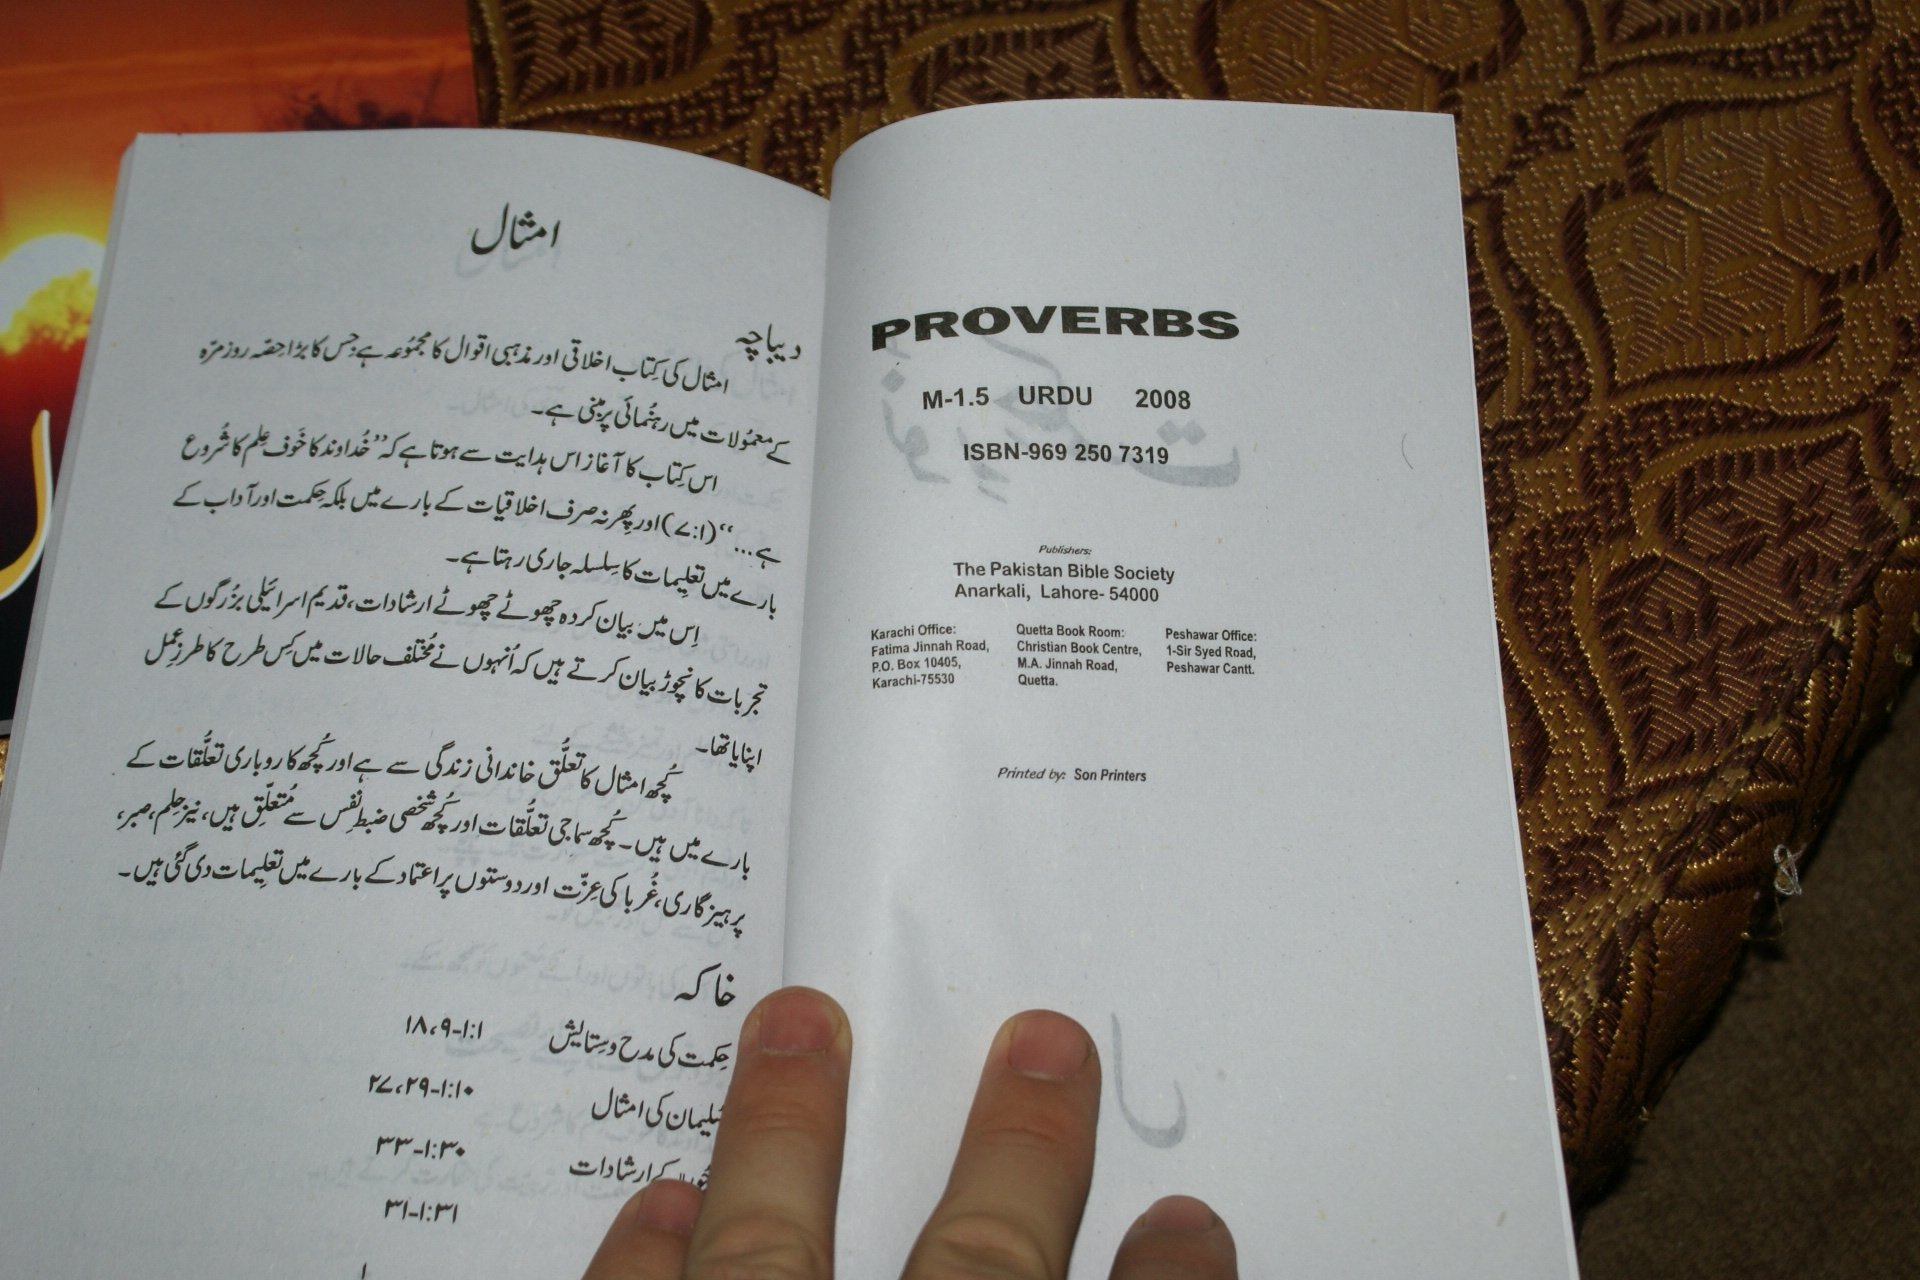 The Book of Proverbs in URDU Language / Proverbs of Solomon